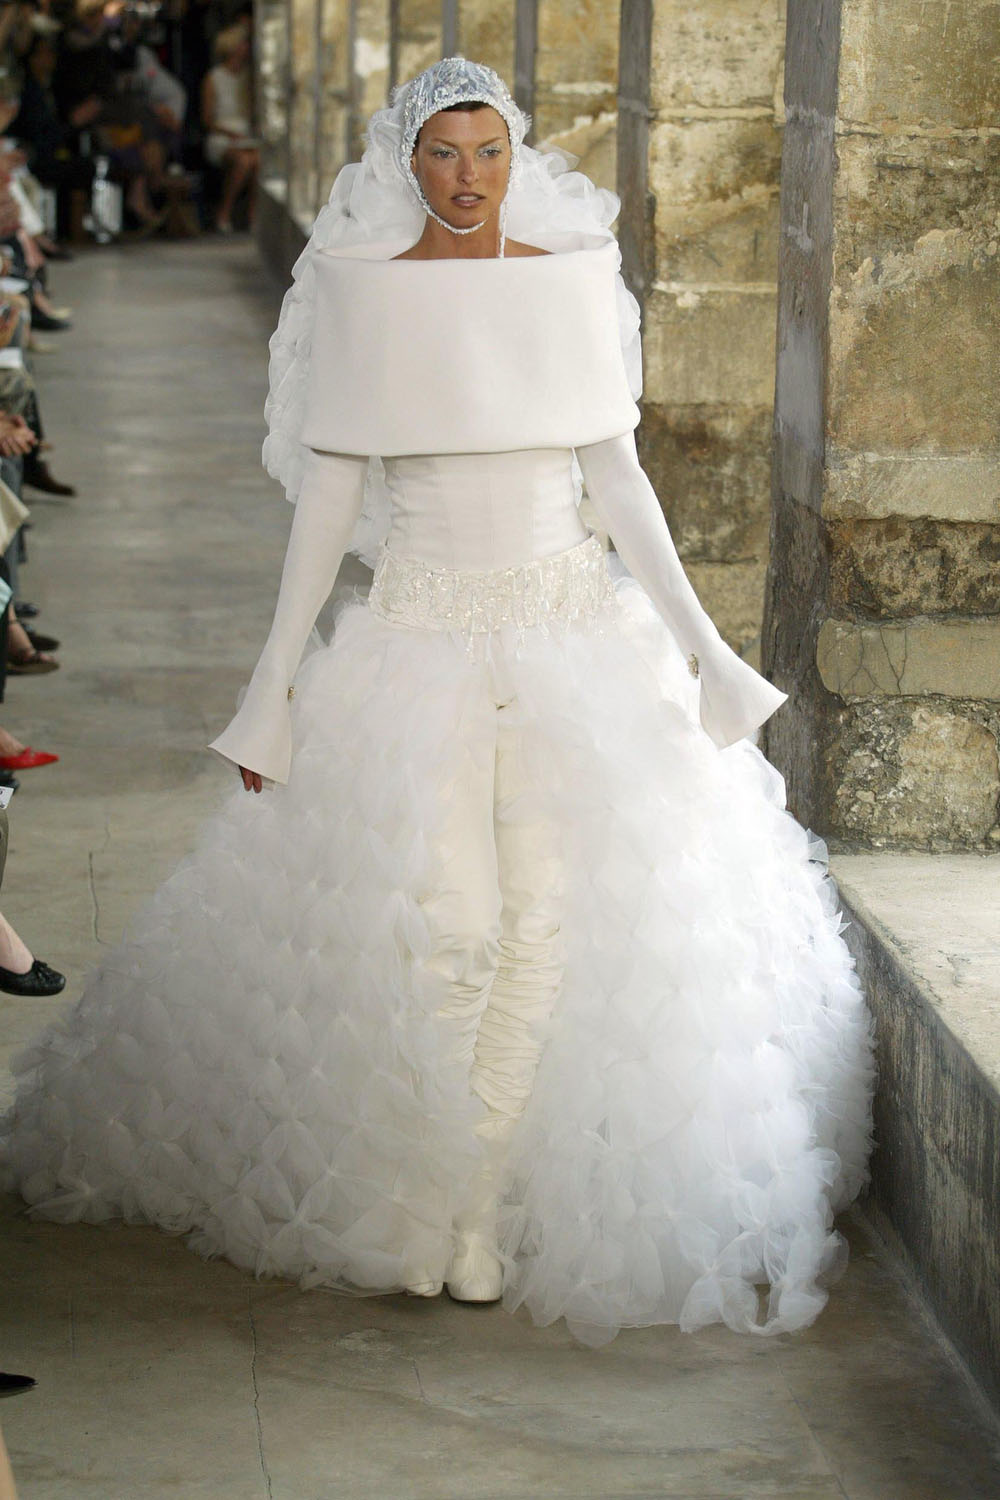 Best chanel wedding dresses these are the celebrity chanel brides best chanel wedding dresses these are the celebrity chanel brides to know junglespirit Choice Image